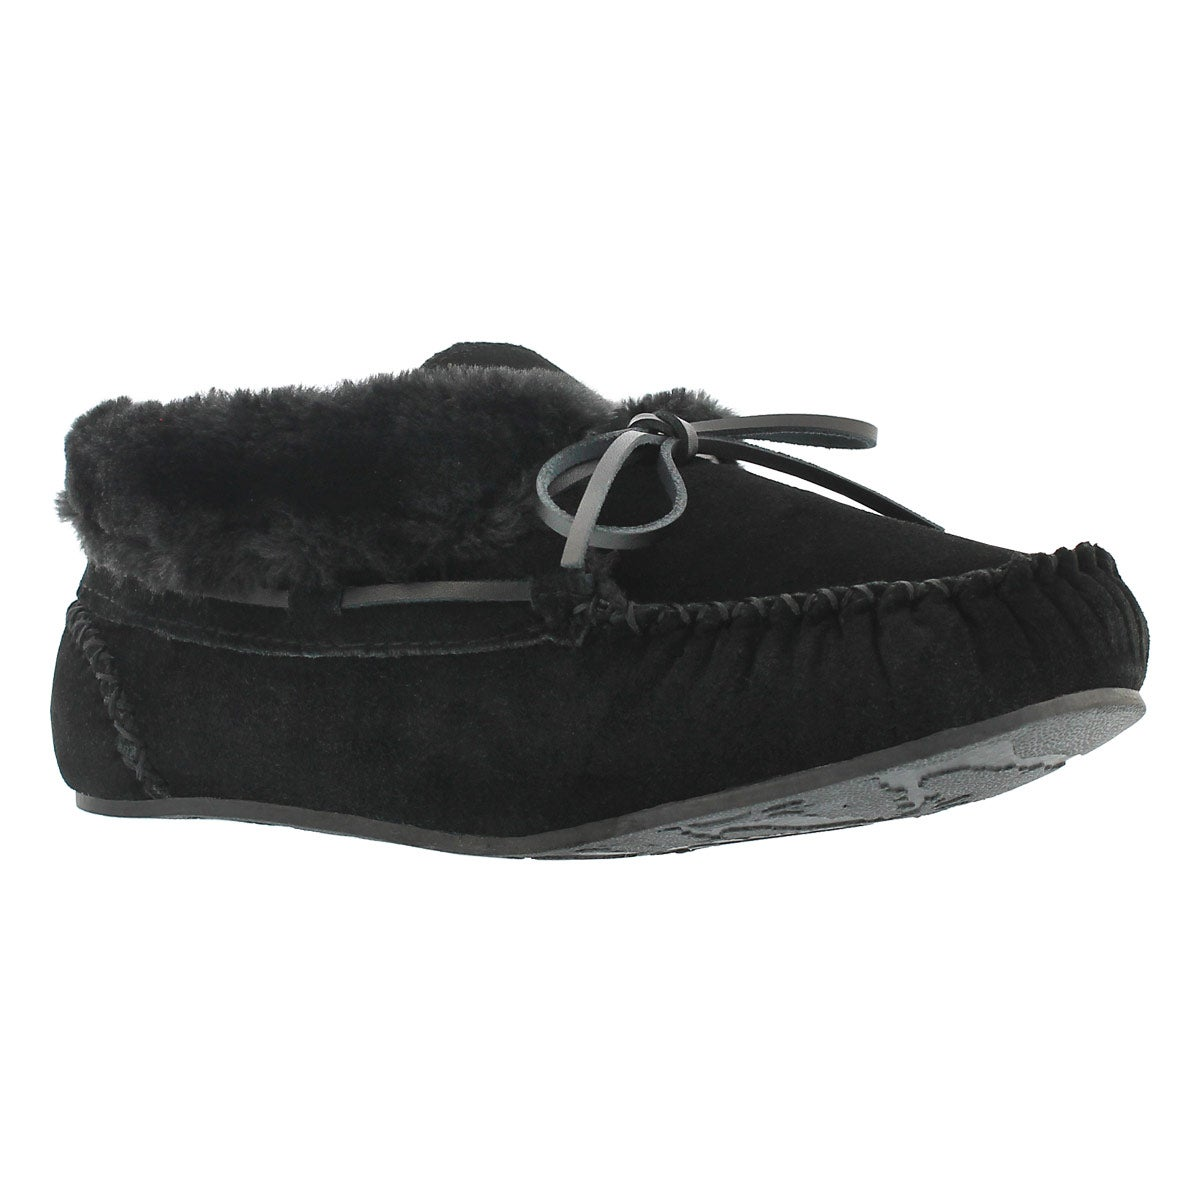 Women's BALI HI PLAIN black/black moc booties